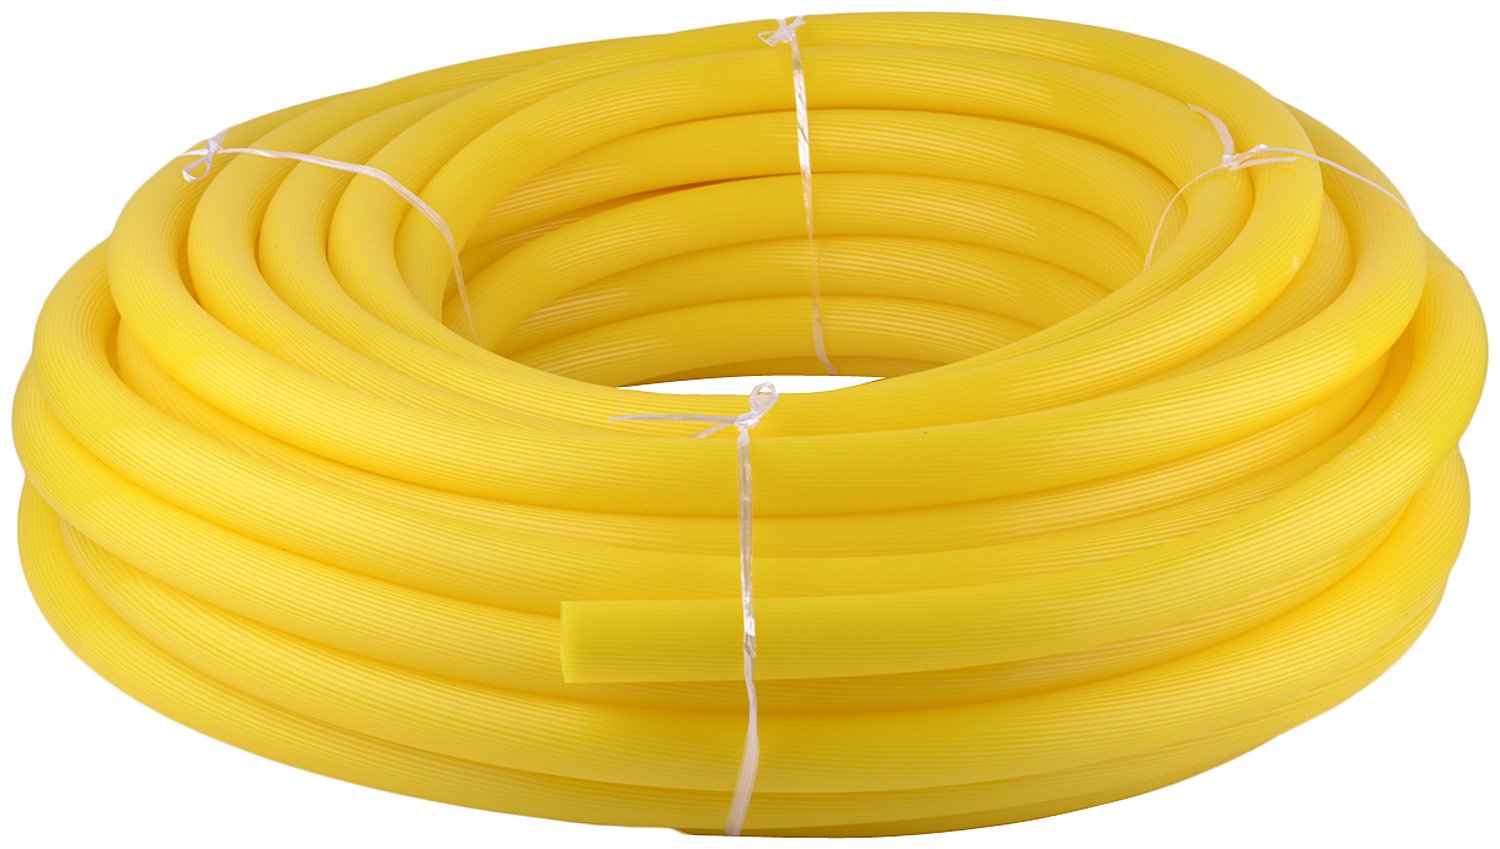 Qualsell Agri Flexible Ribbed Garden Water Hose Pipe (Sunlight Resistant)  Polymer Yellow 1 Inch 30 Meters: Amazon.in: Garden & Outdoors